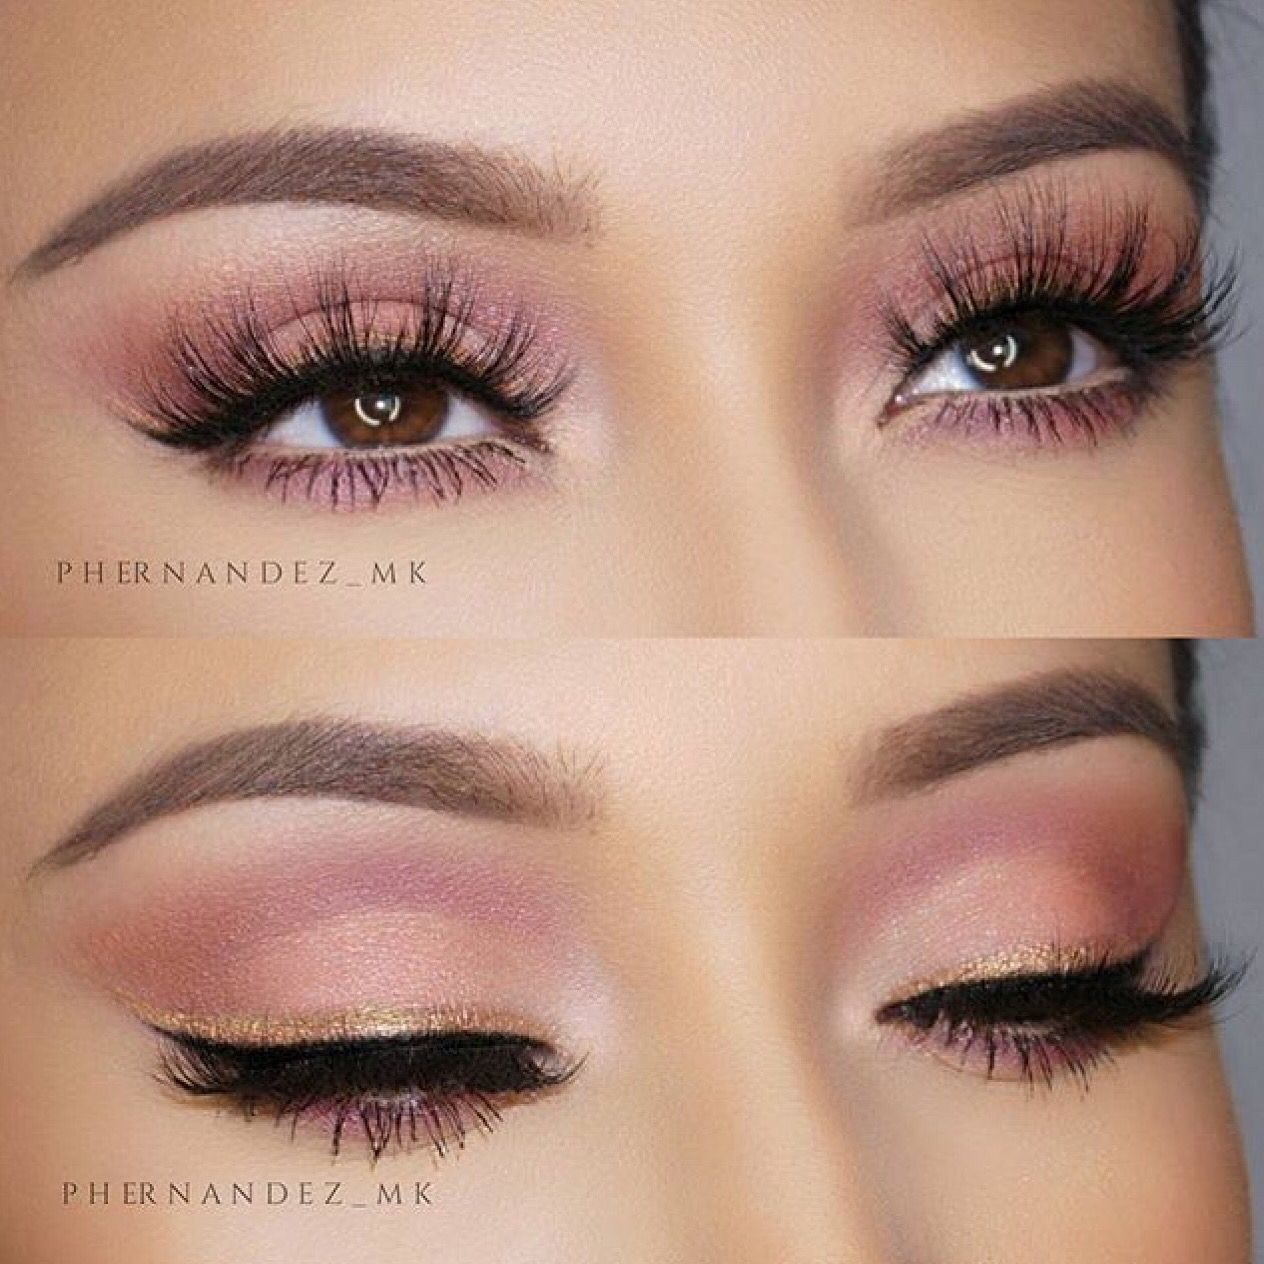 d549f25015f Flirty doll eyes using Lotus Lashes No. 410 | Makeup Ideas ...